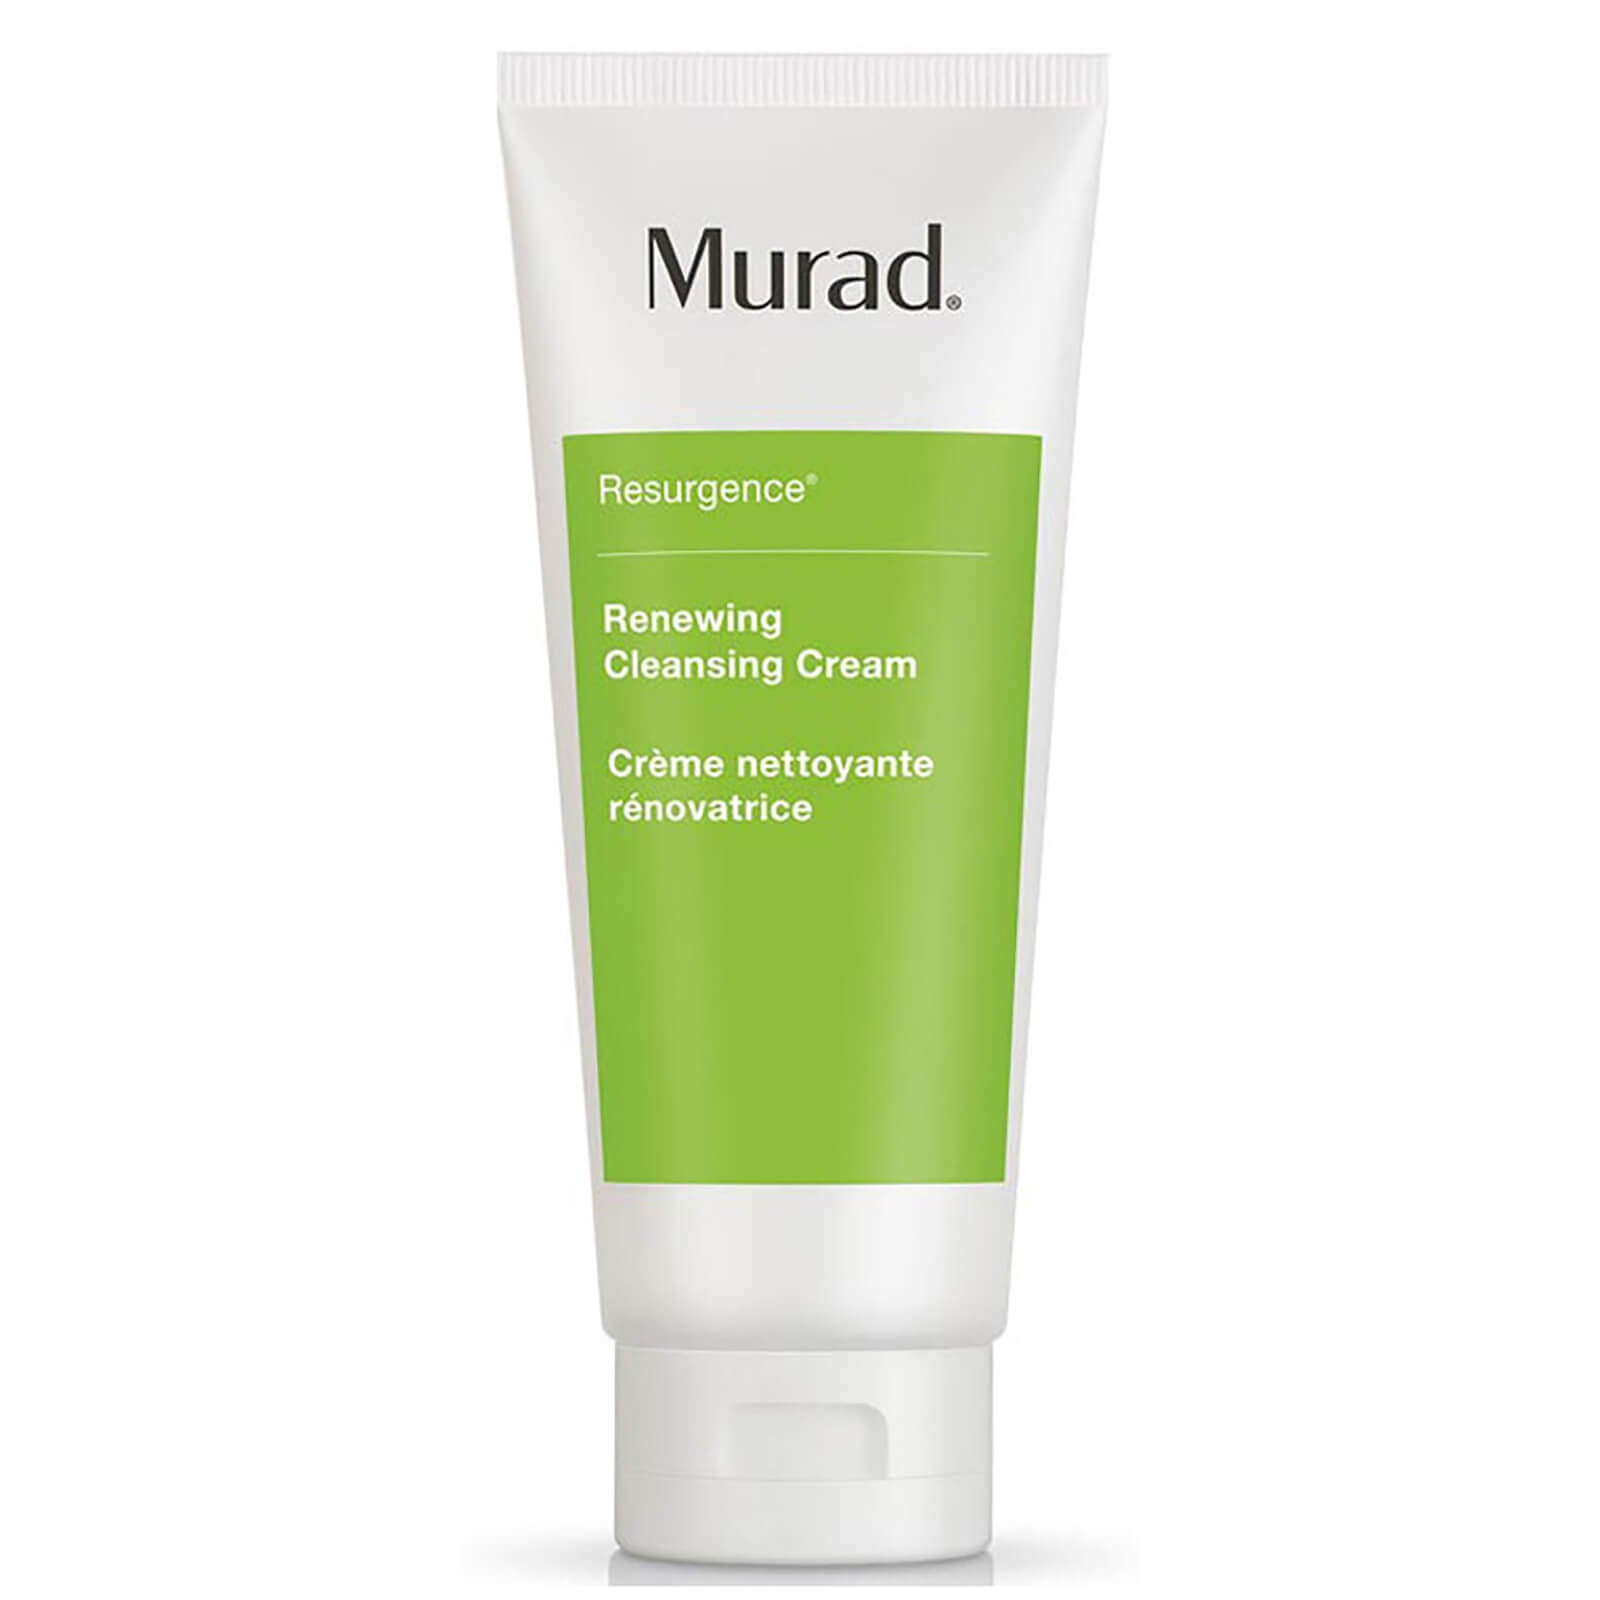 Renewing Cleansing Cream - The Perfect Products